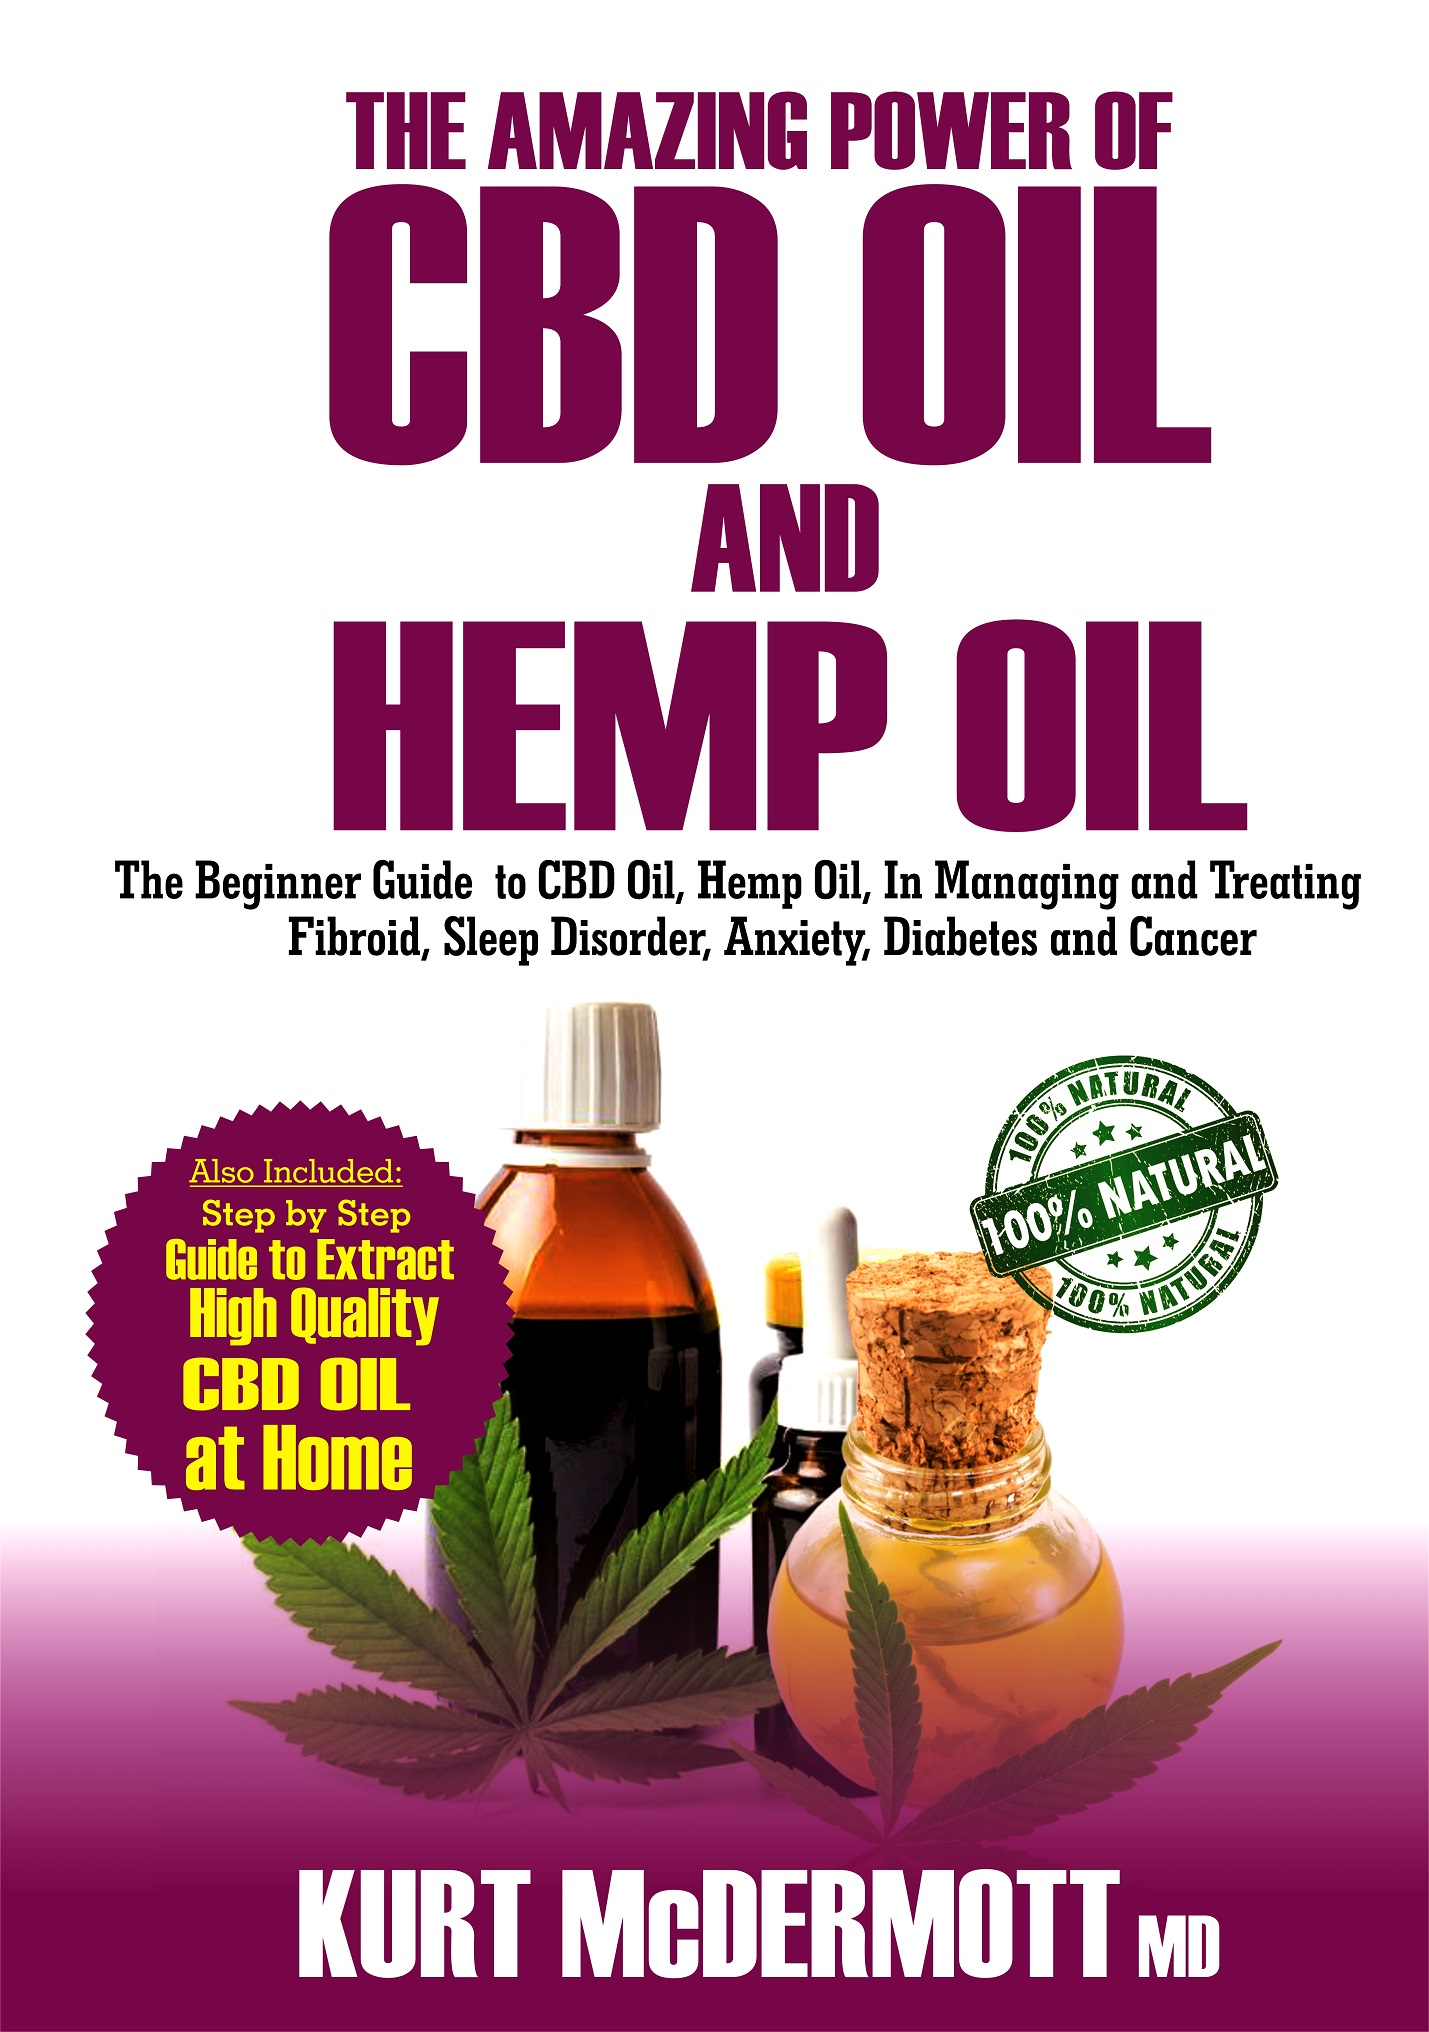 The amazing power of cbd oil and hemp oil: